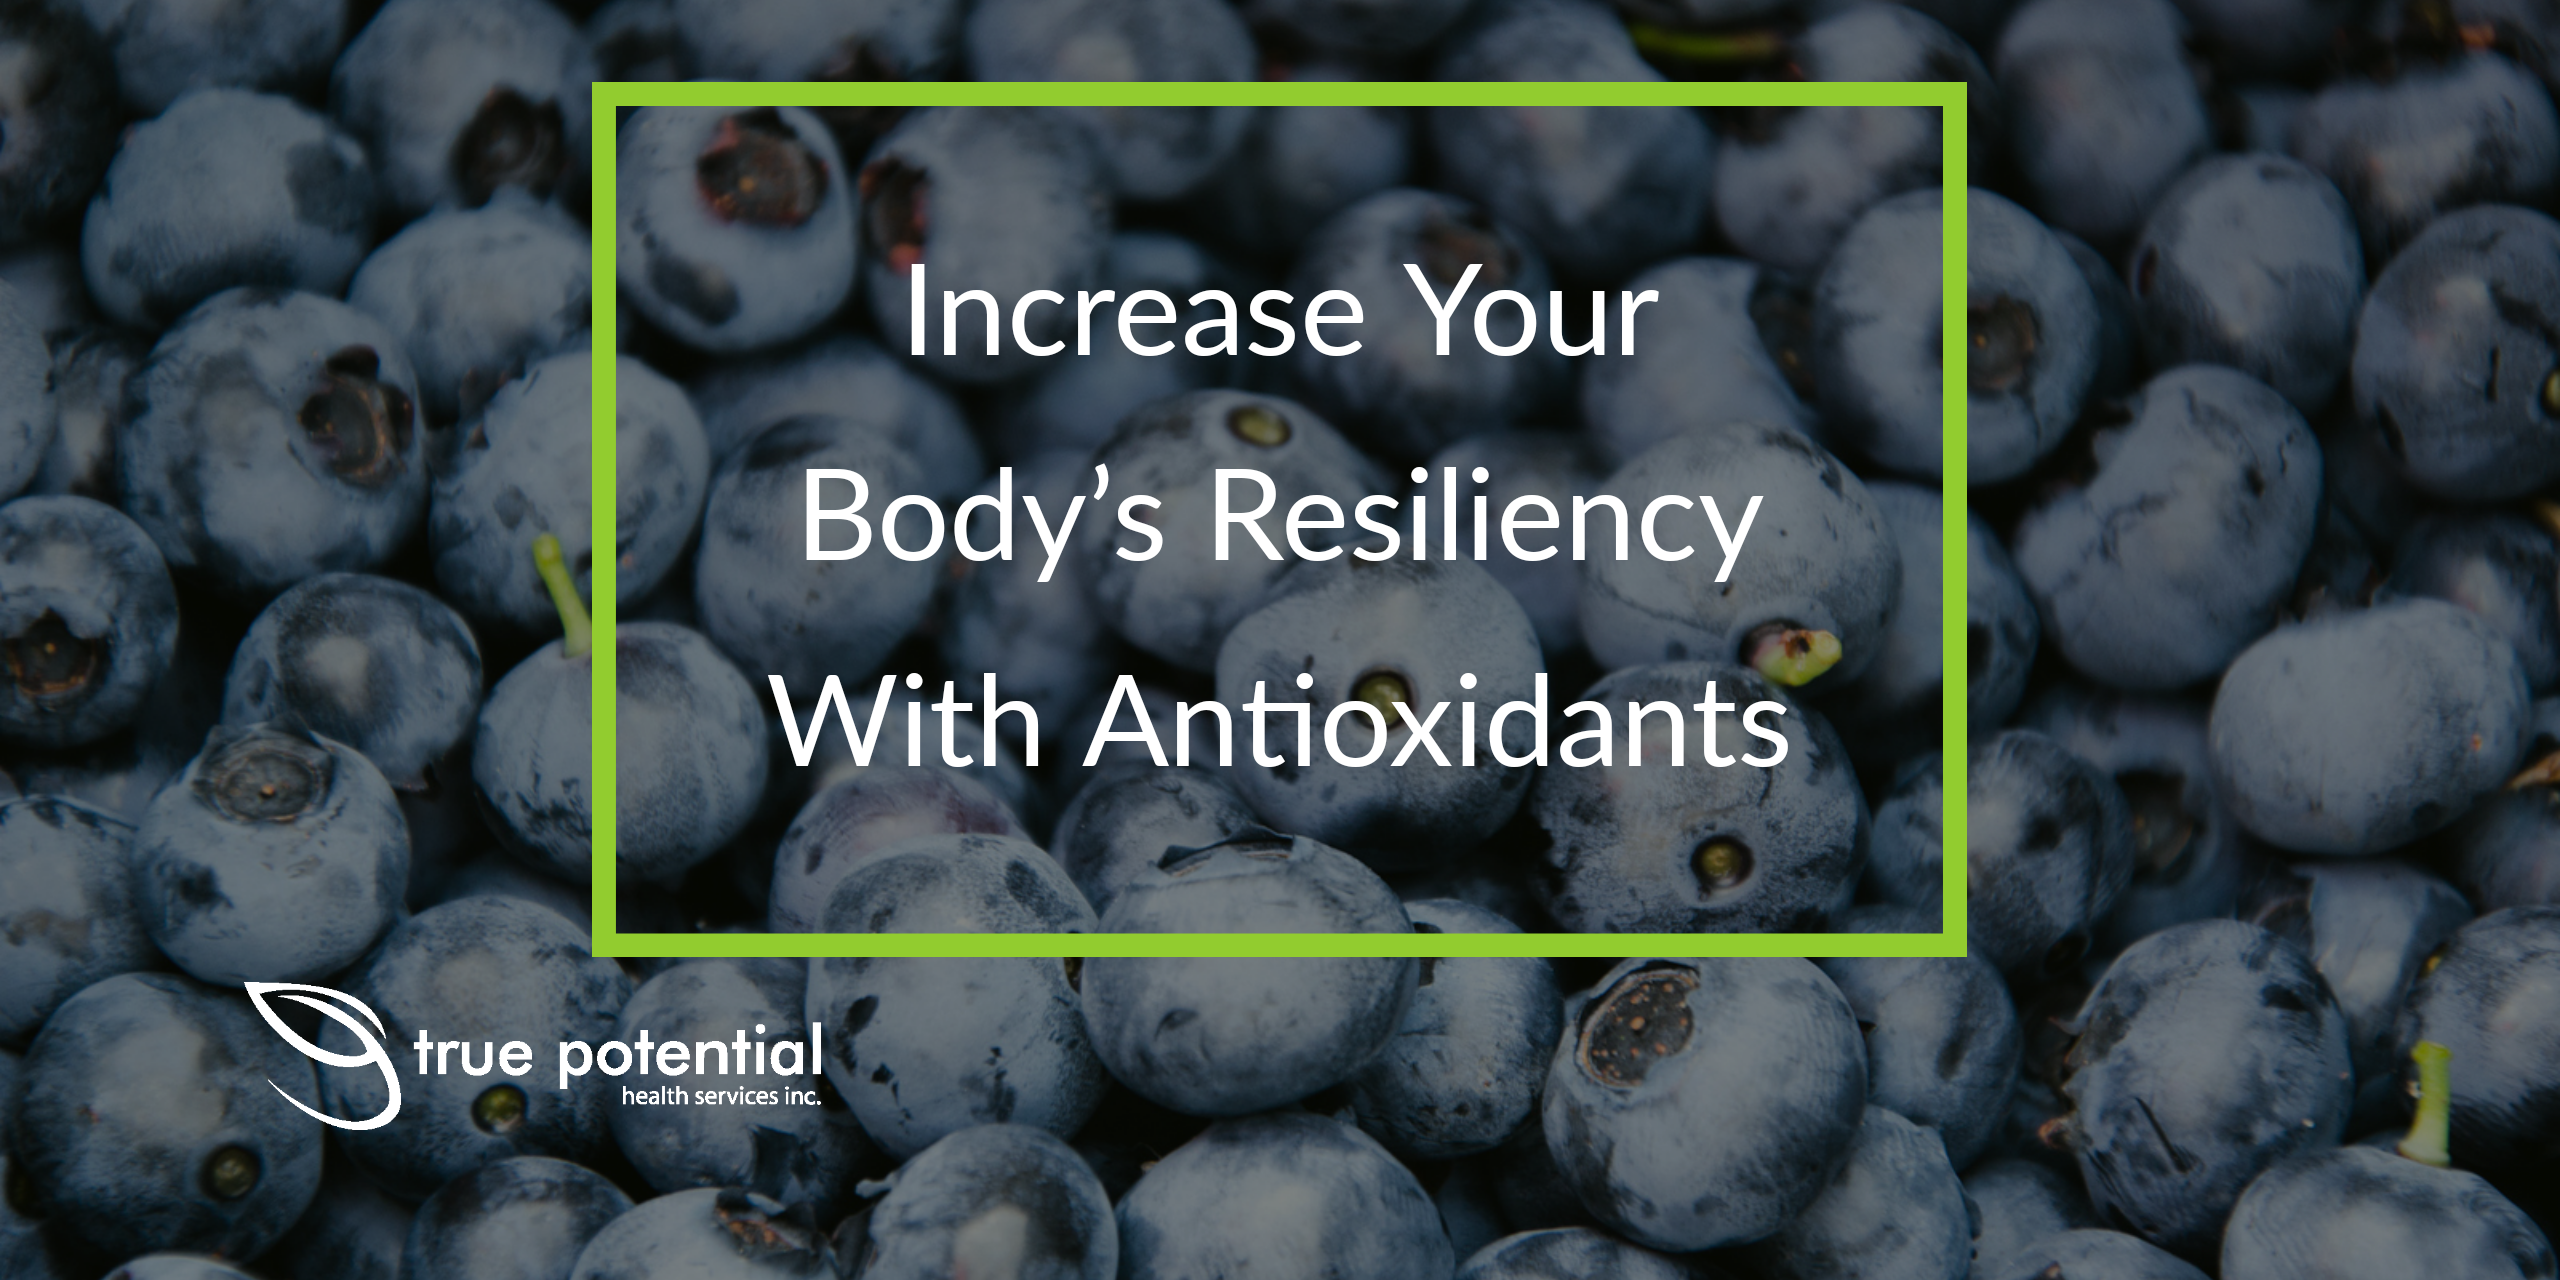 mprove your respiratory health with antioxidants!